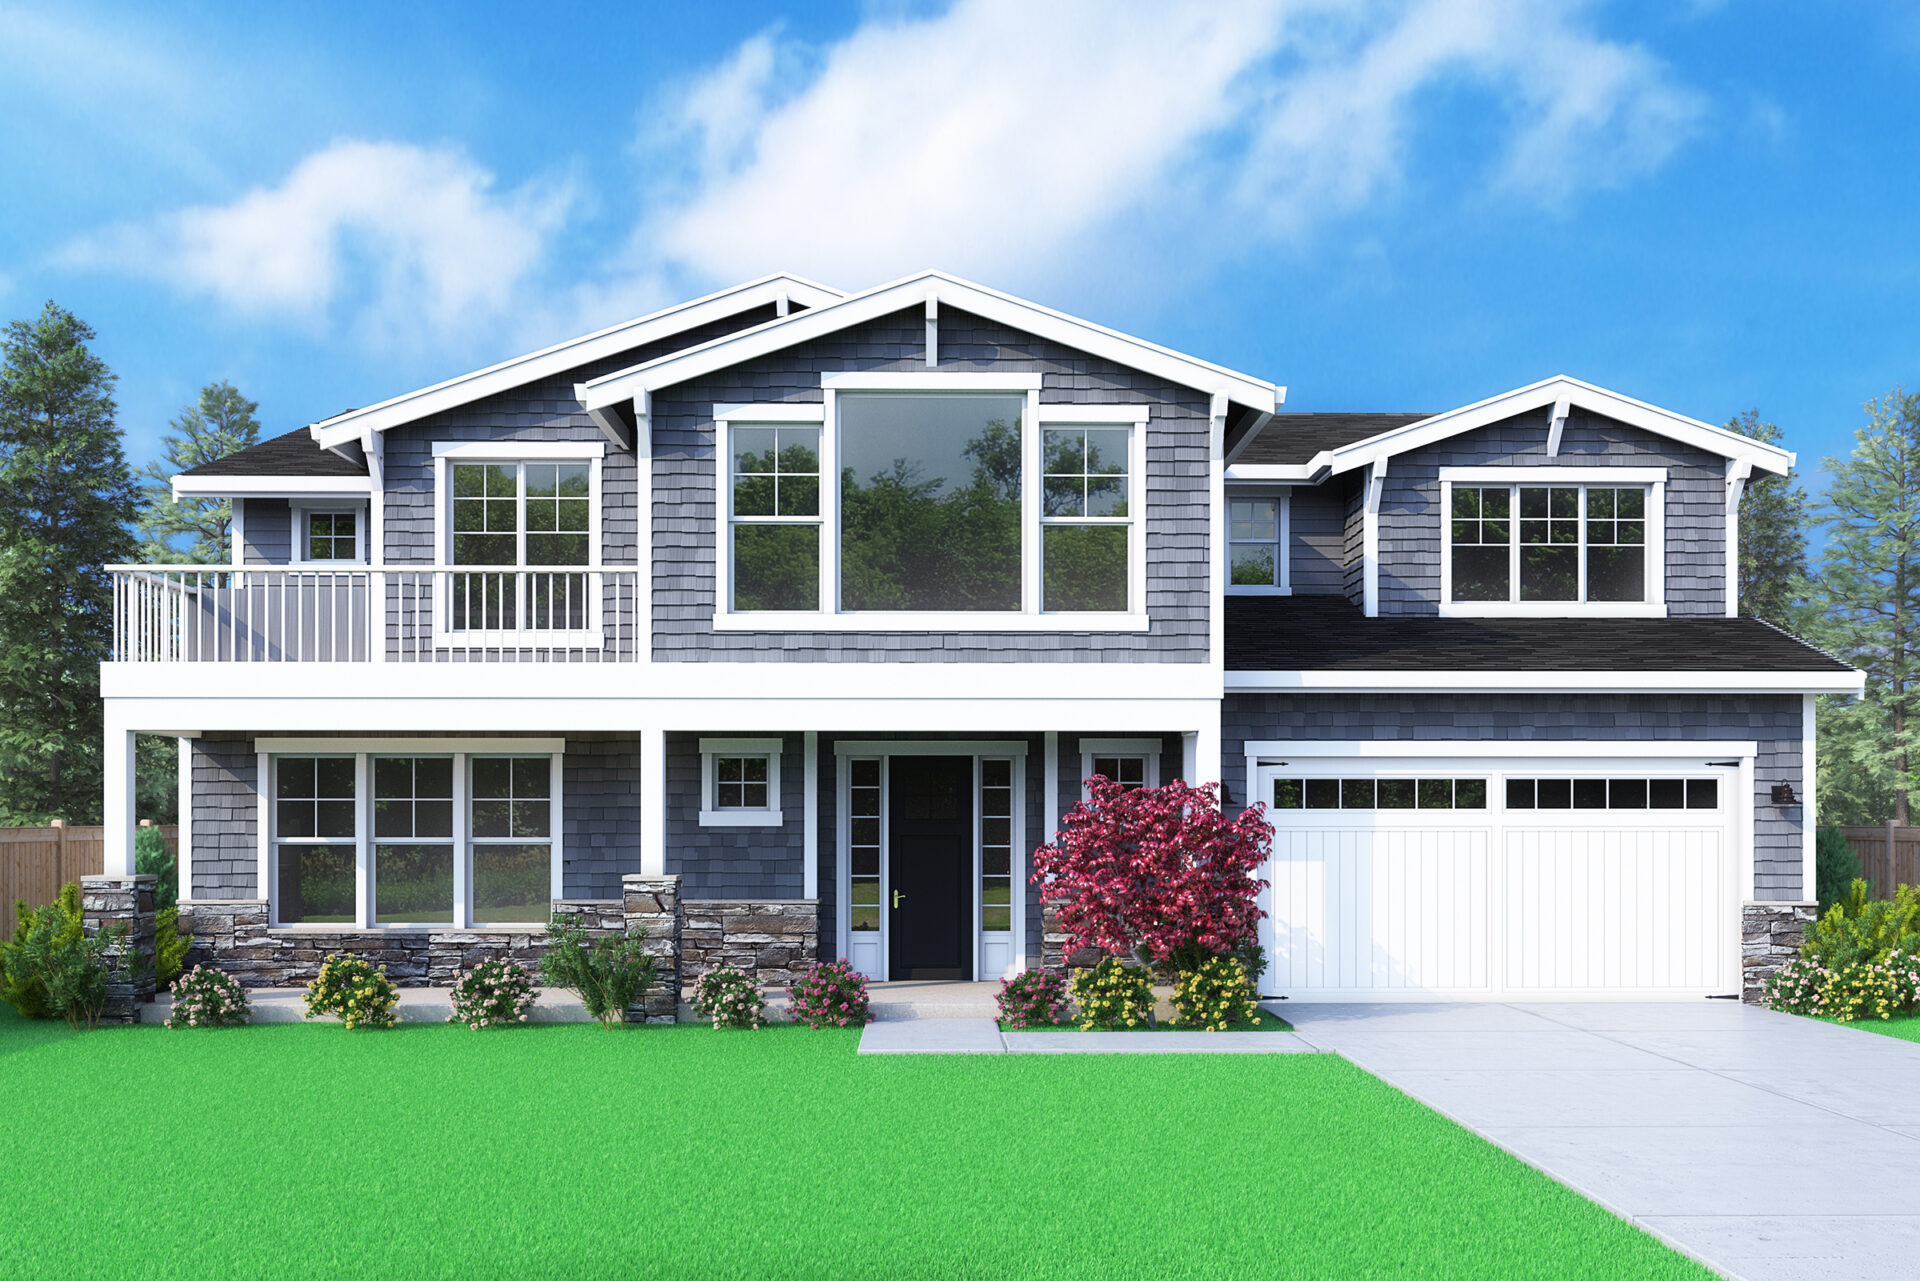 View our new luxury home construction on 10648 NE 45th St, Kirkland WA from MN Custom Homes